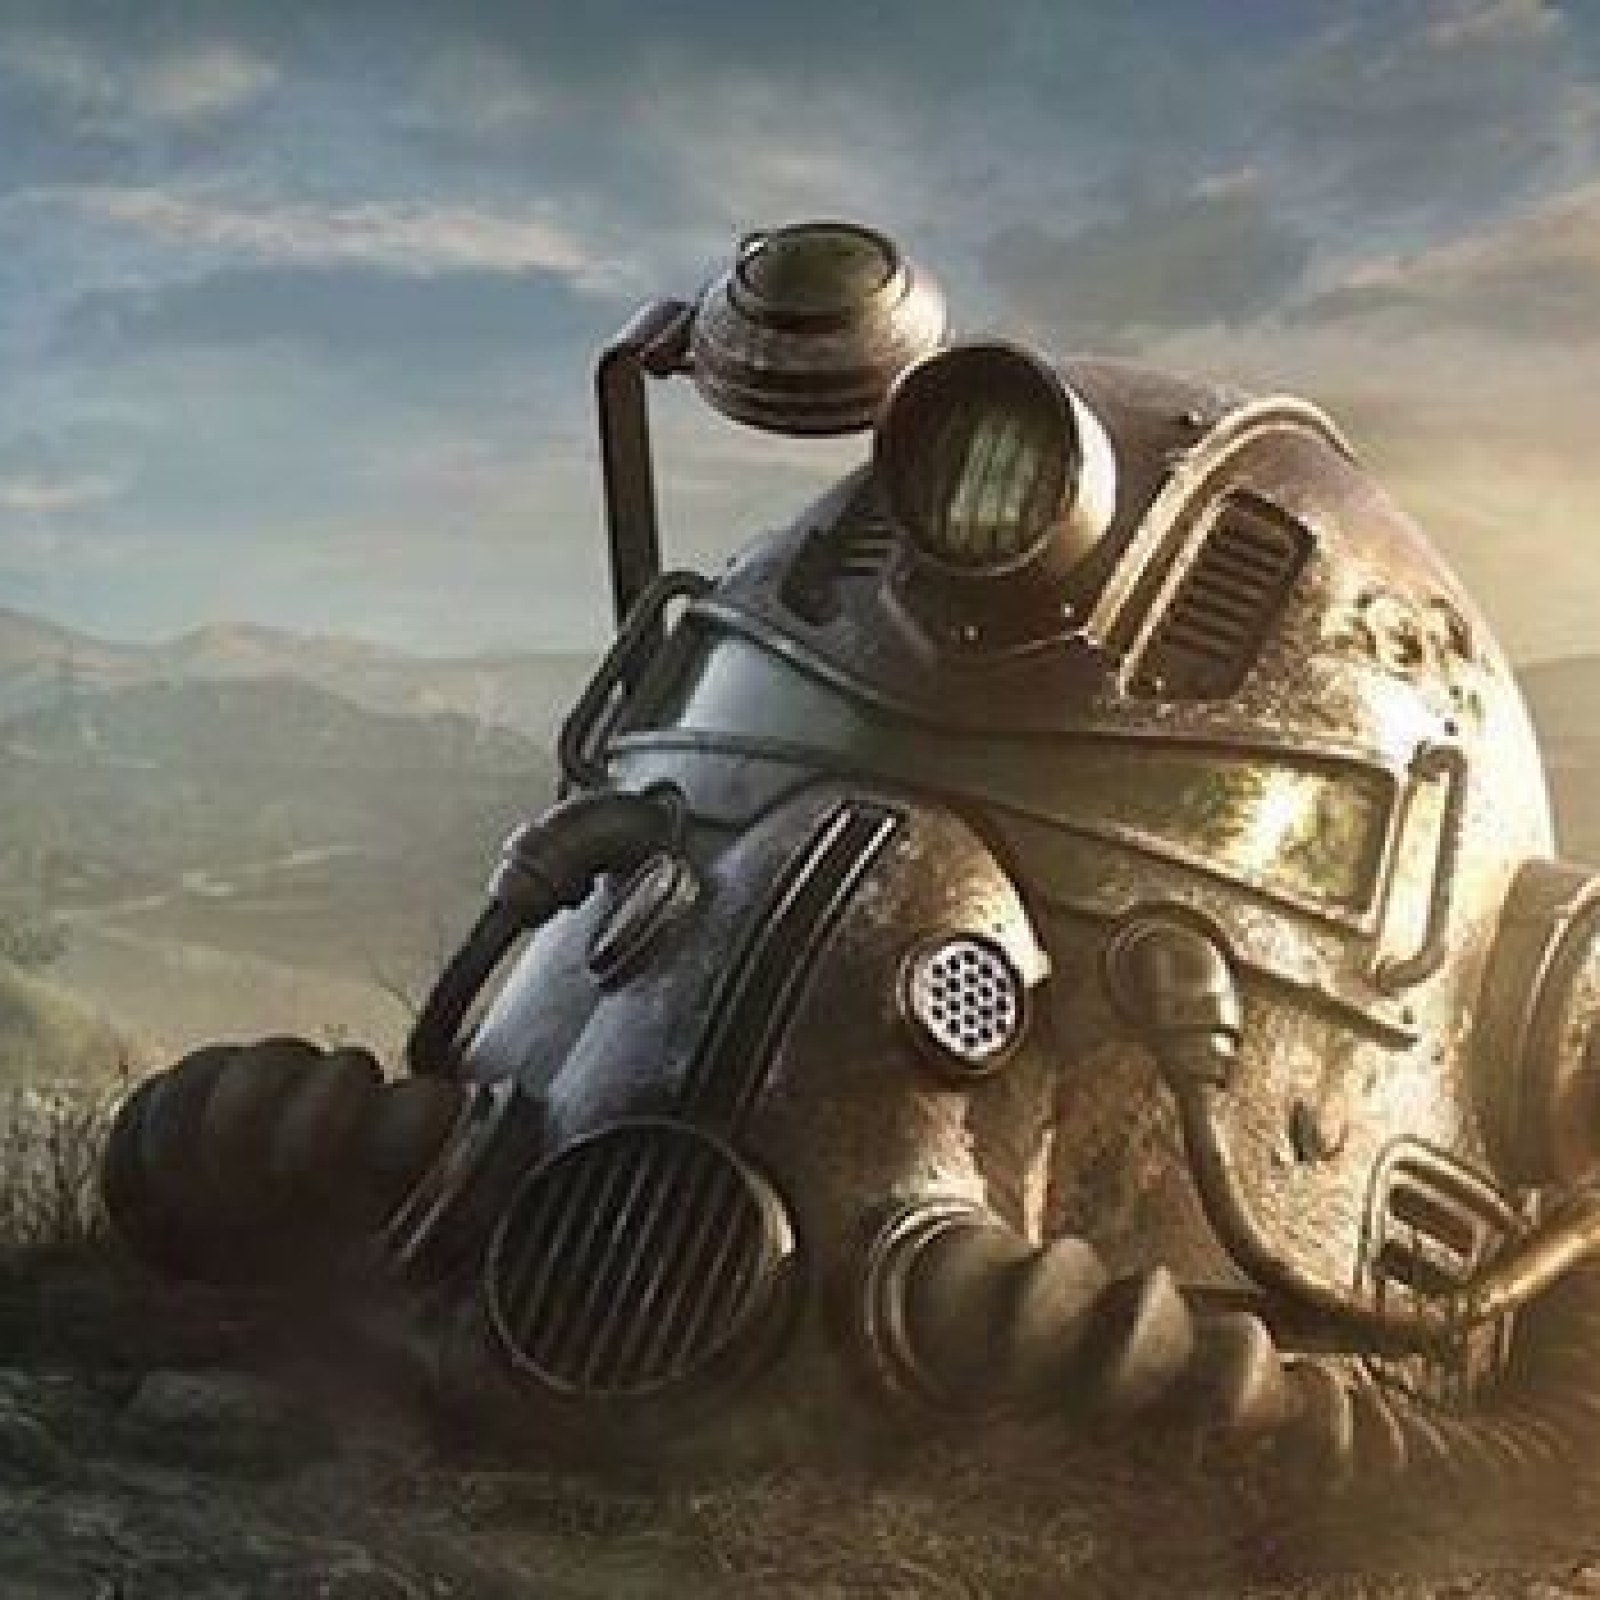 Fallout 76' Update: Patch 5 Nerfs Explosive Shotgun and Other